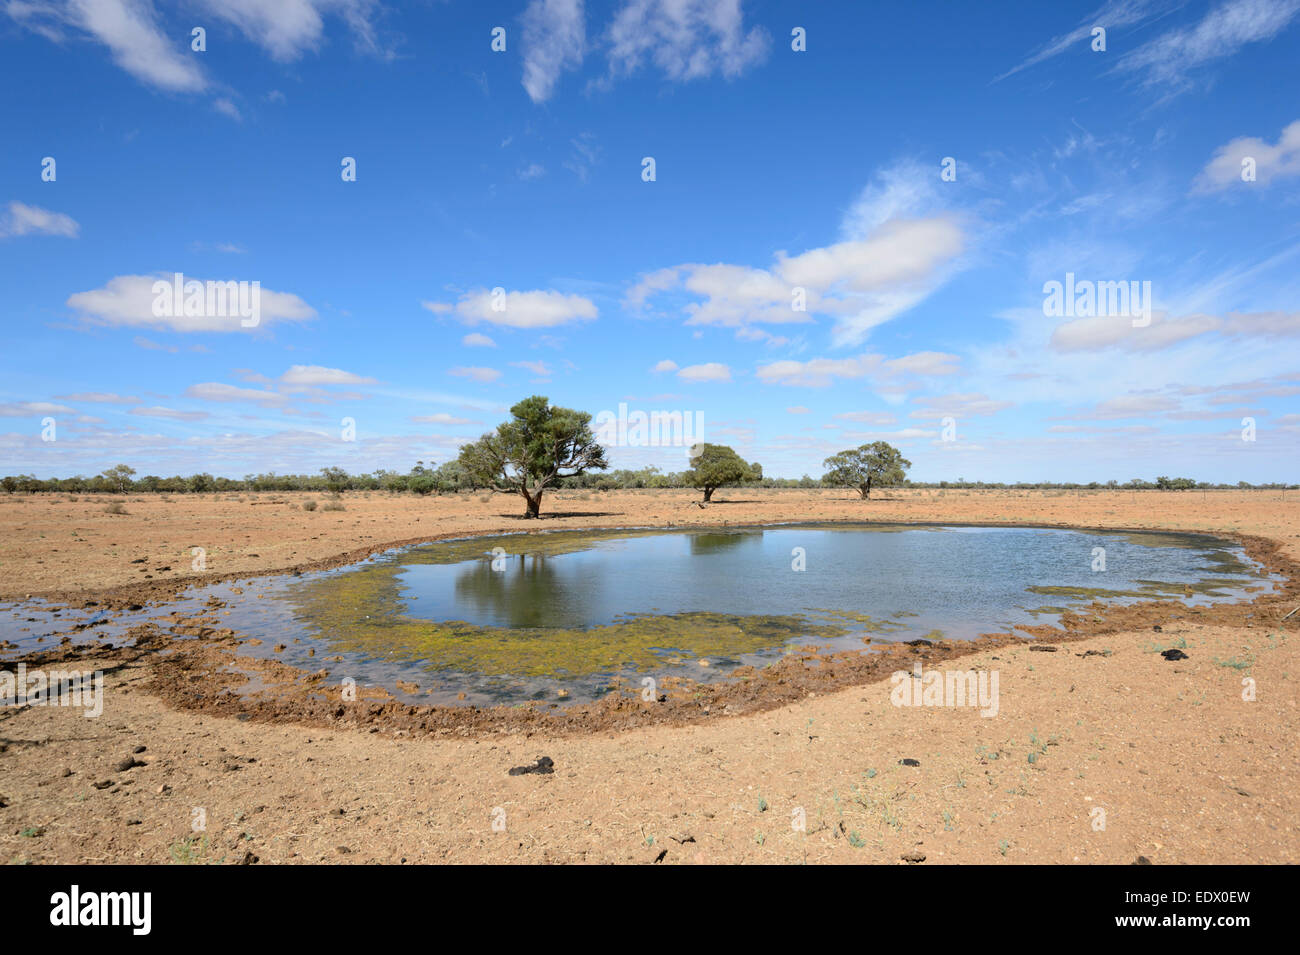 Slimy Watering Hole for Cattle along the Oodnadatta Track, South Australia, SA, Australia Stock Photo